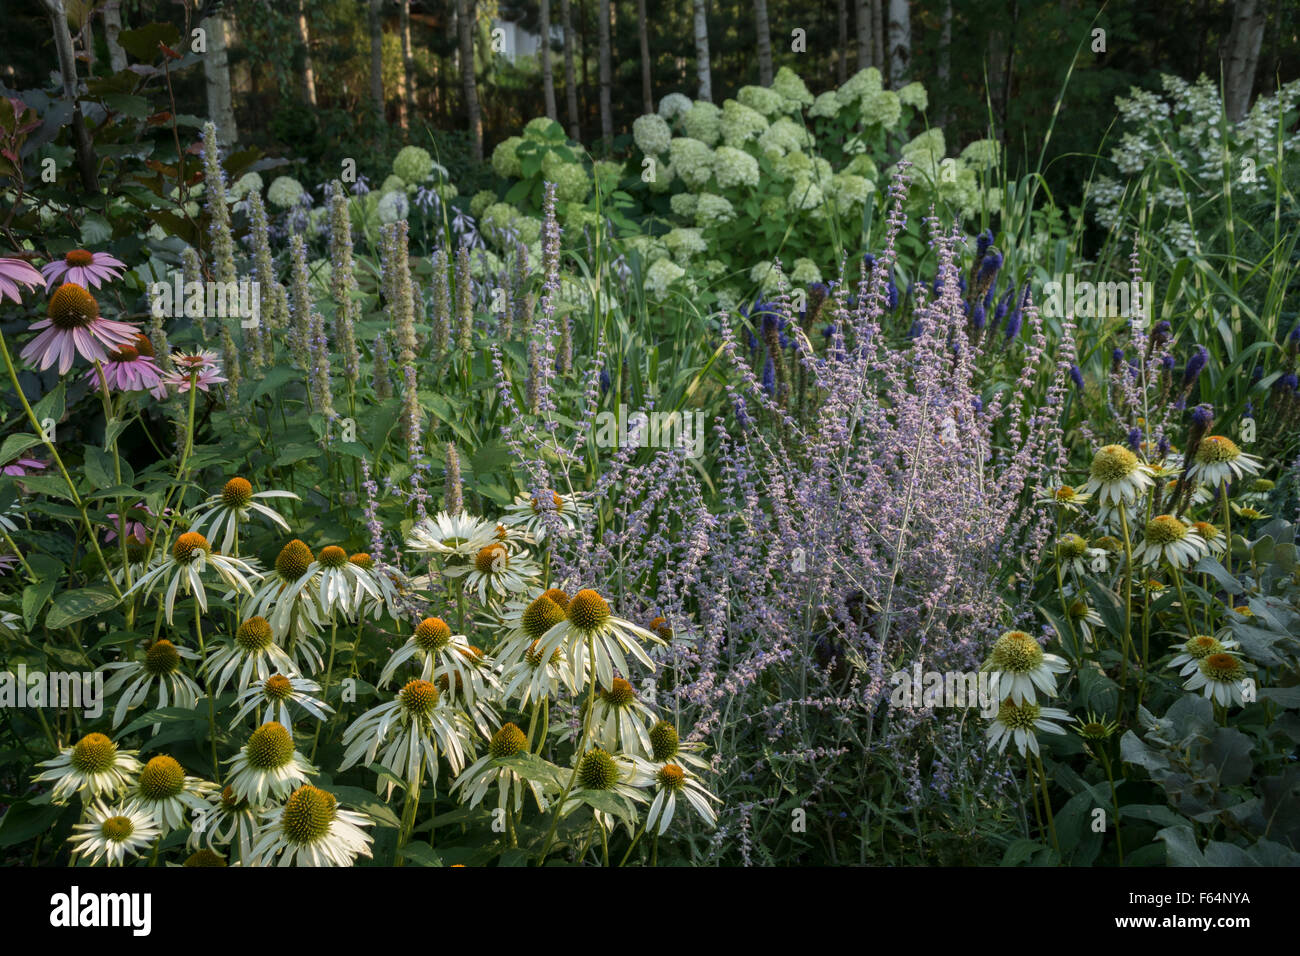 Summer border planted with white and violet perennials. - Stock Image